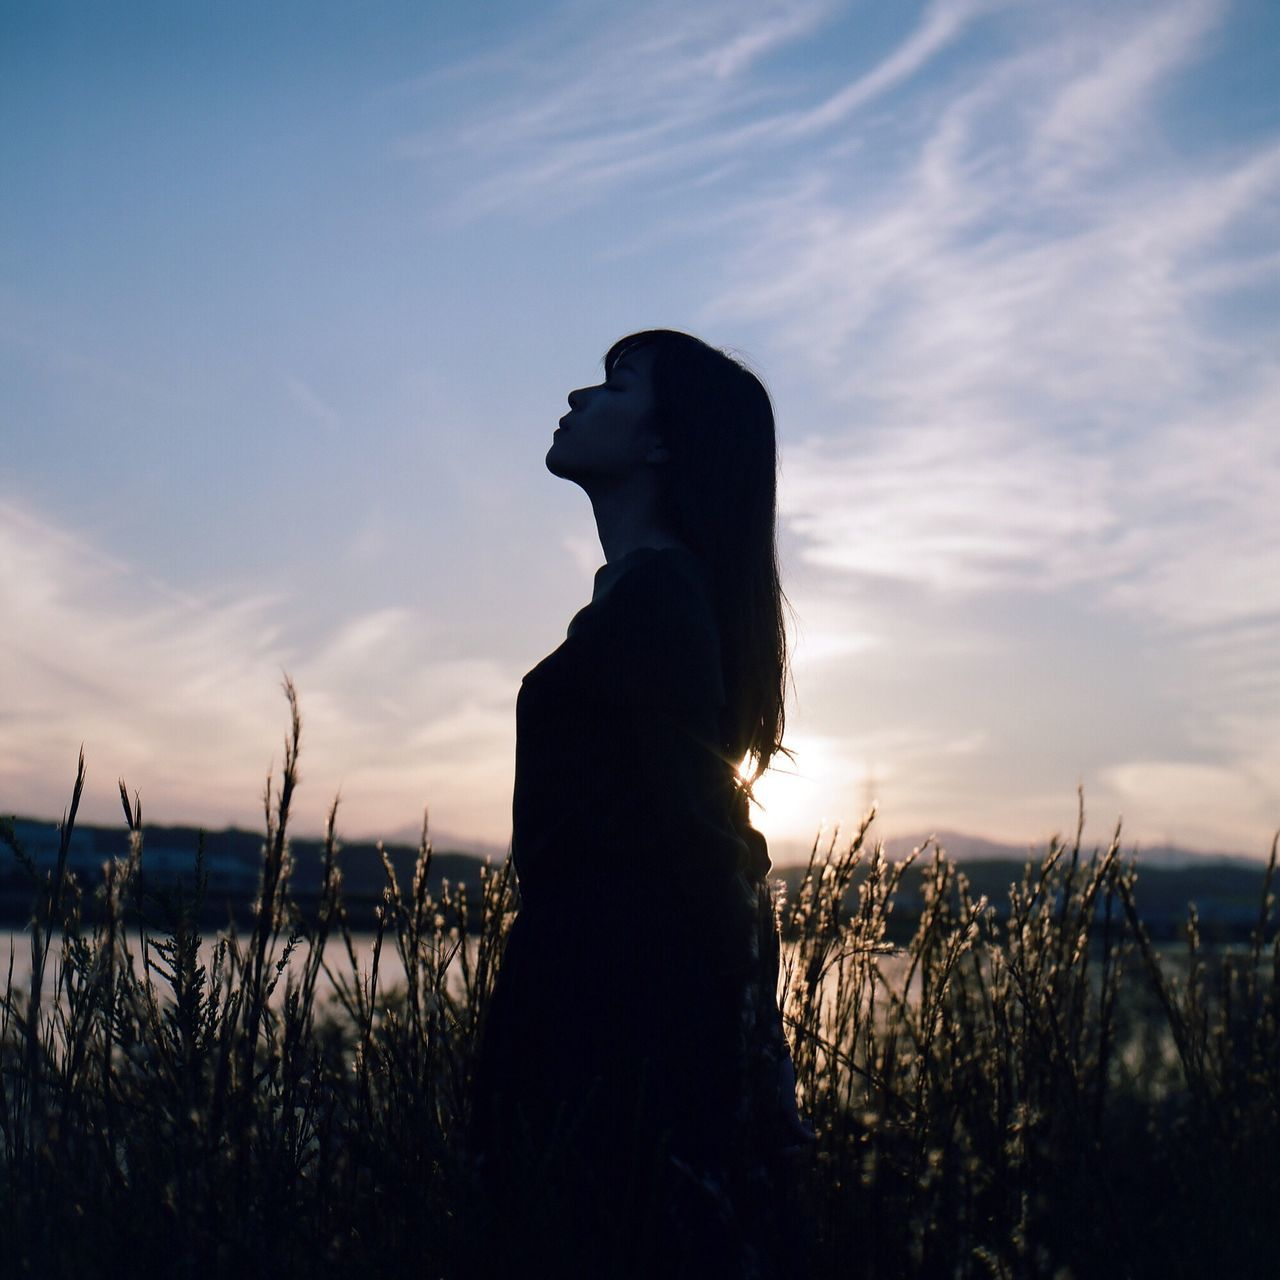 sunset, sky, silhouette, nature, field, cloud - sky, beauty in nature, outdoors, tranquility, growth, plant, tranquil scene, one person, scenics, flower, day, people